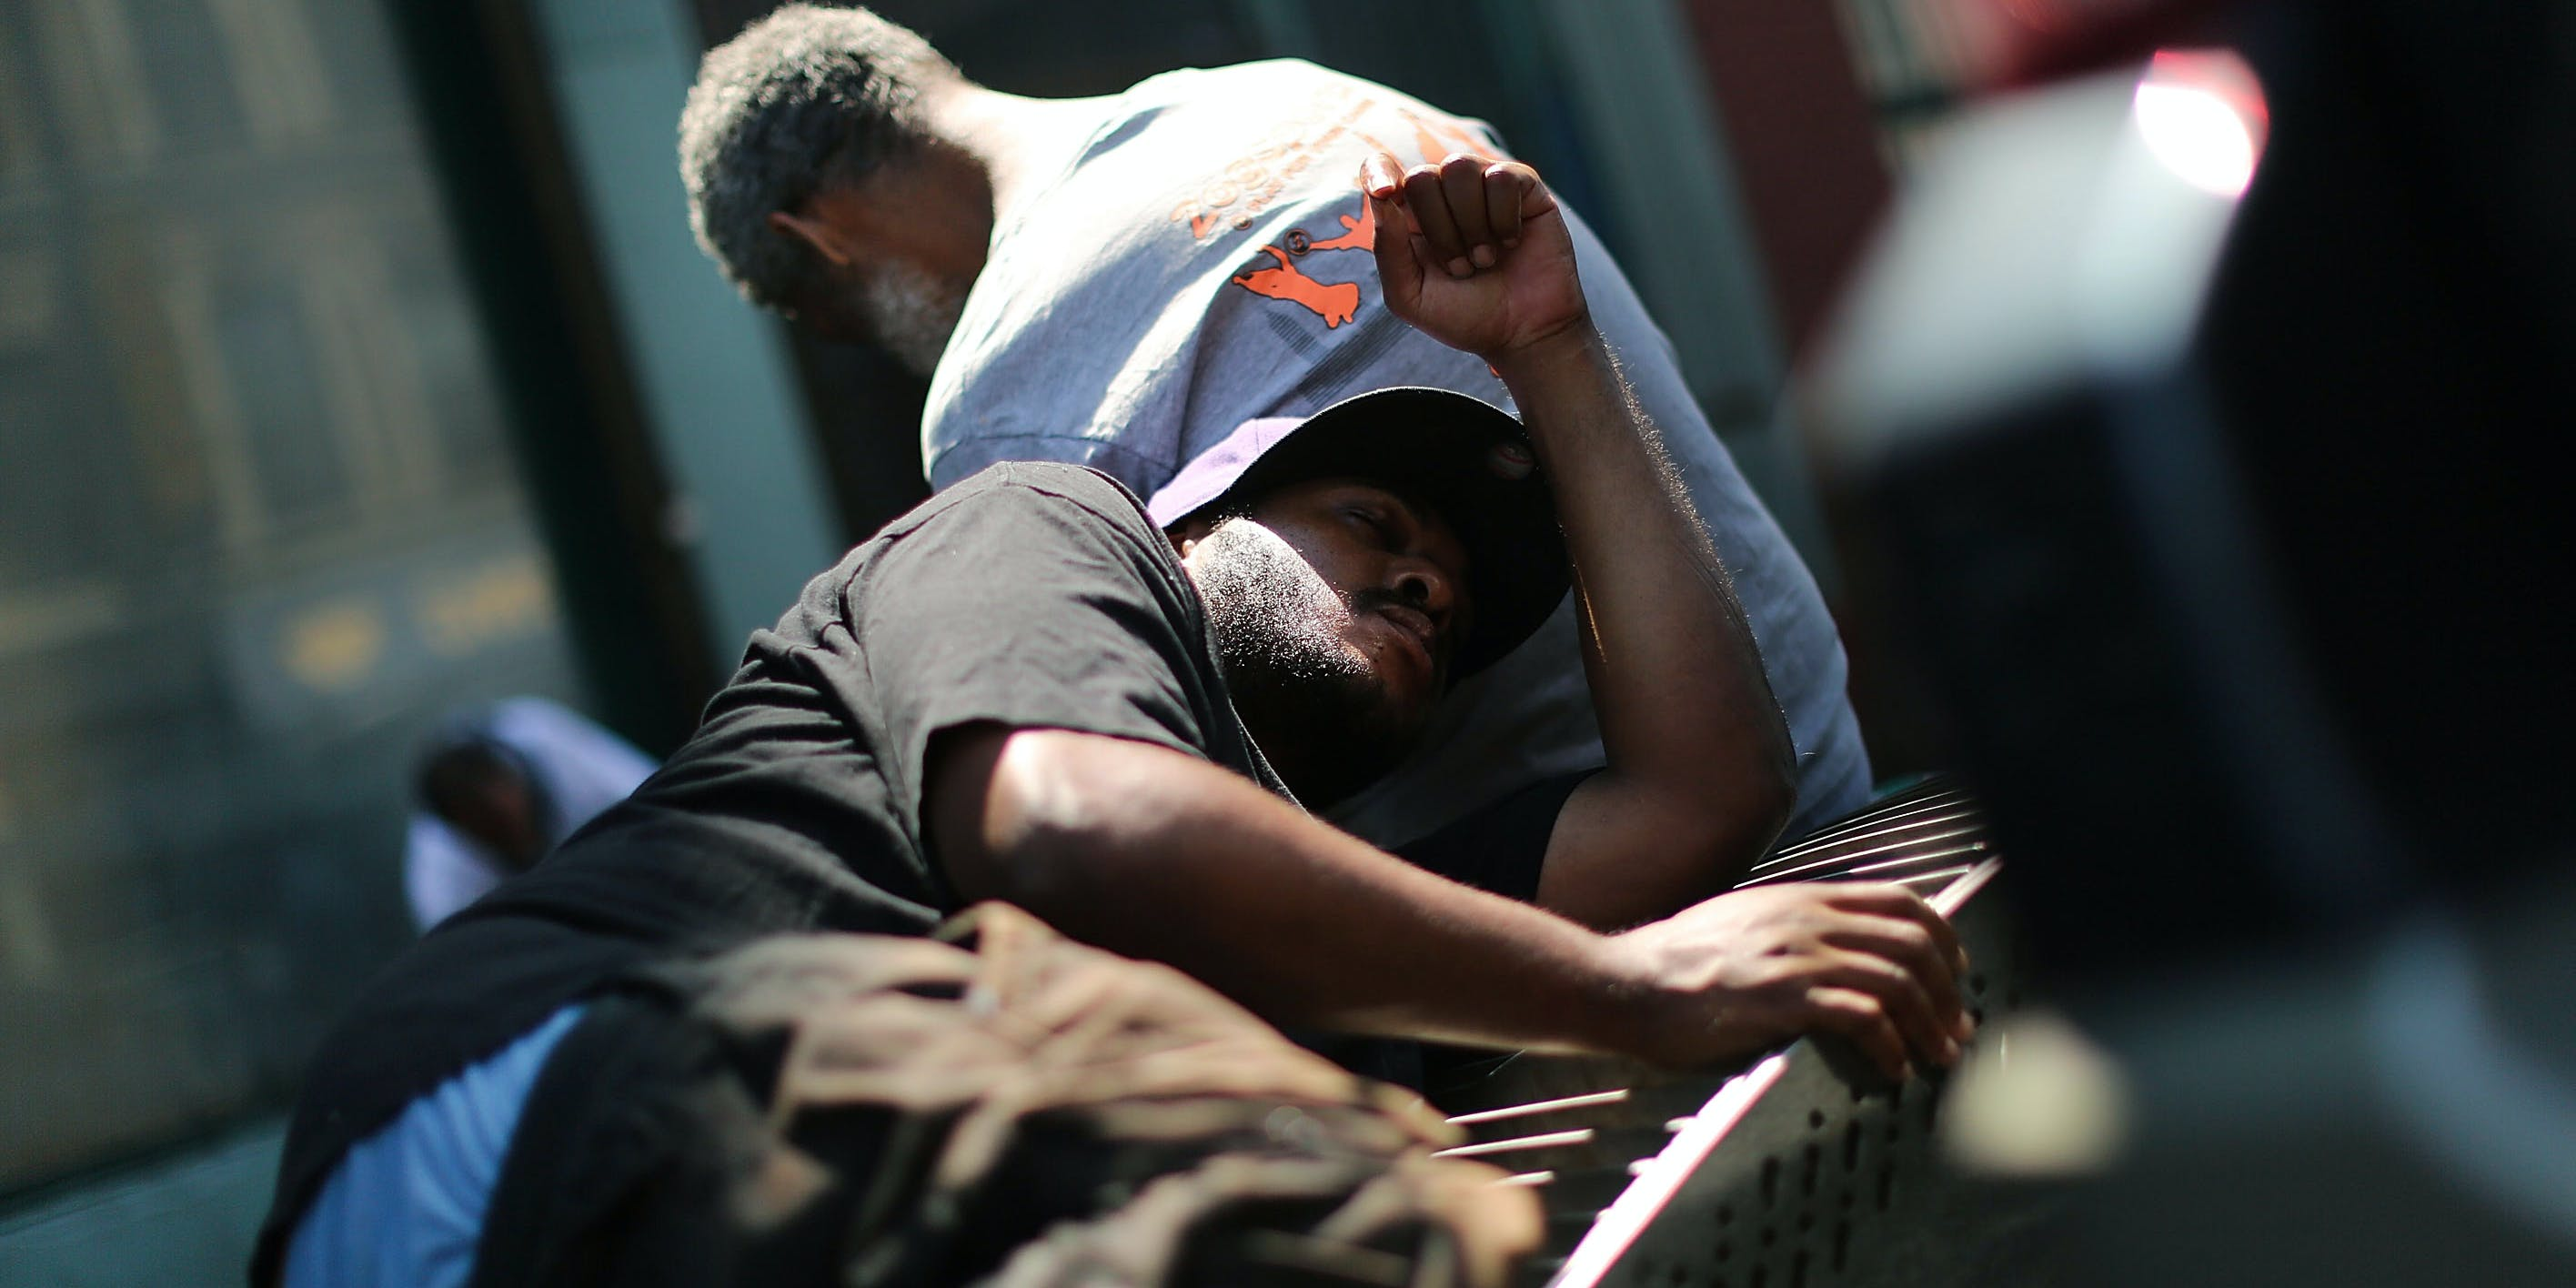 """NEW YORK, NY - AUGUST 05: Men who are high on K2 or """"Spice,"""" a synthetic cannabis drug, sleep along a street in East Harlem on August 5, 2015 in New York City. (Photo by Spencer Platt/Getty Images)"""